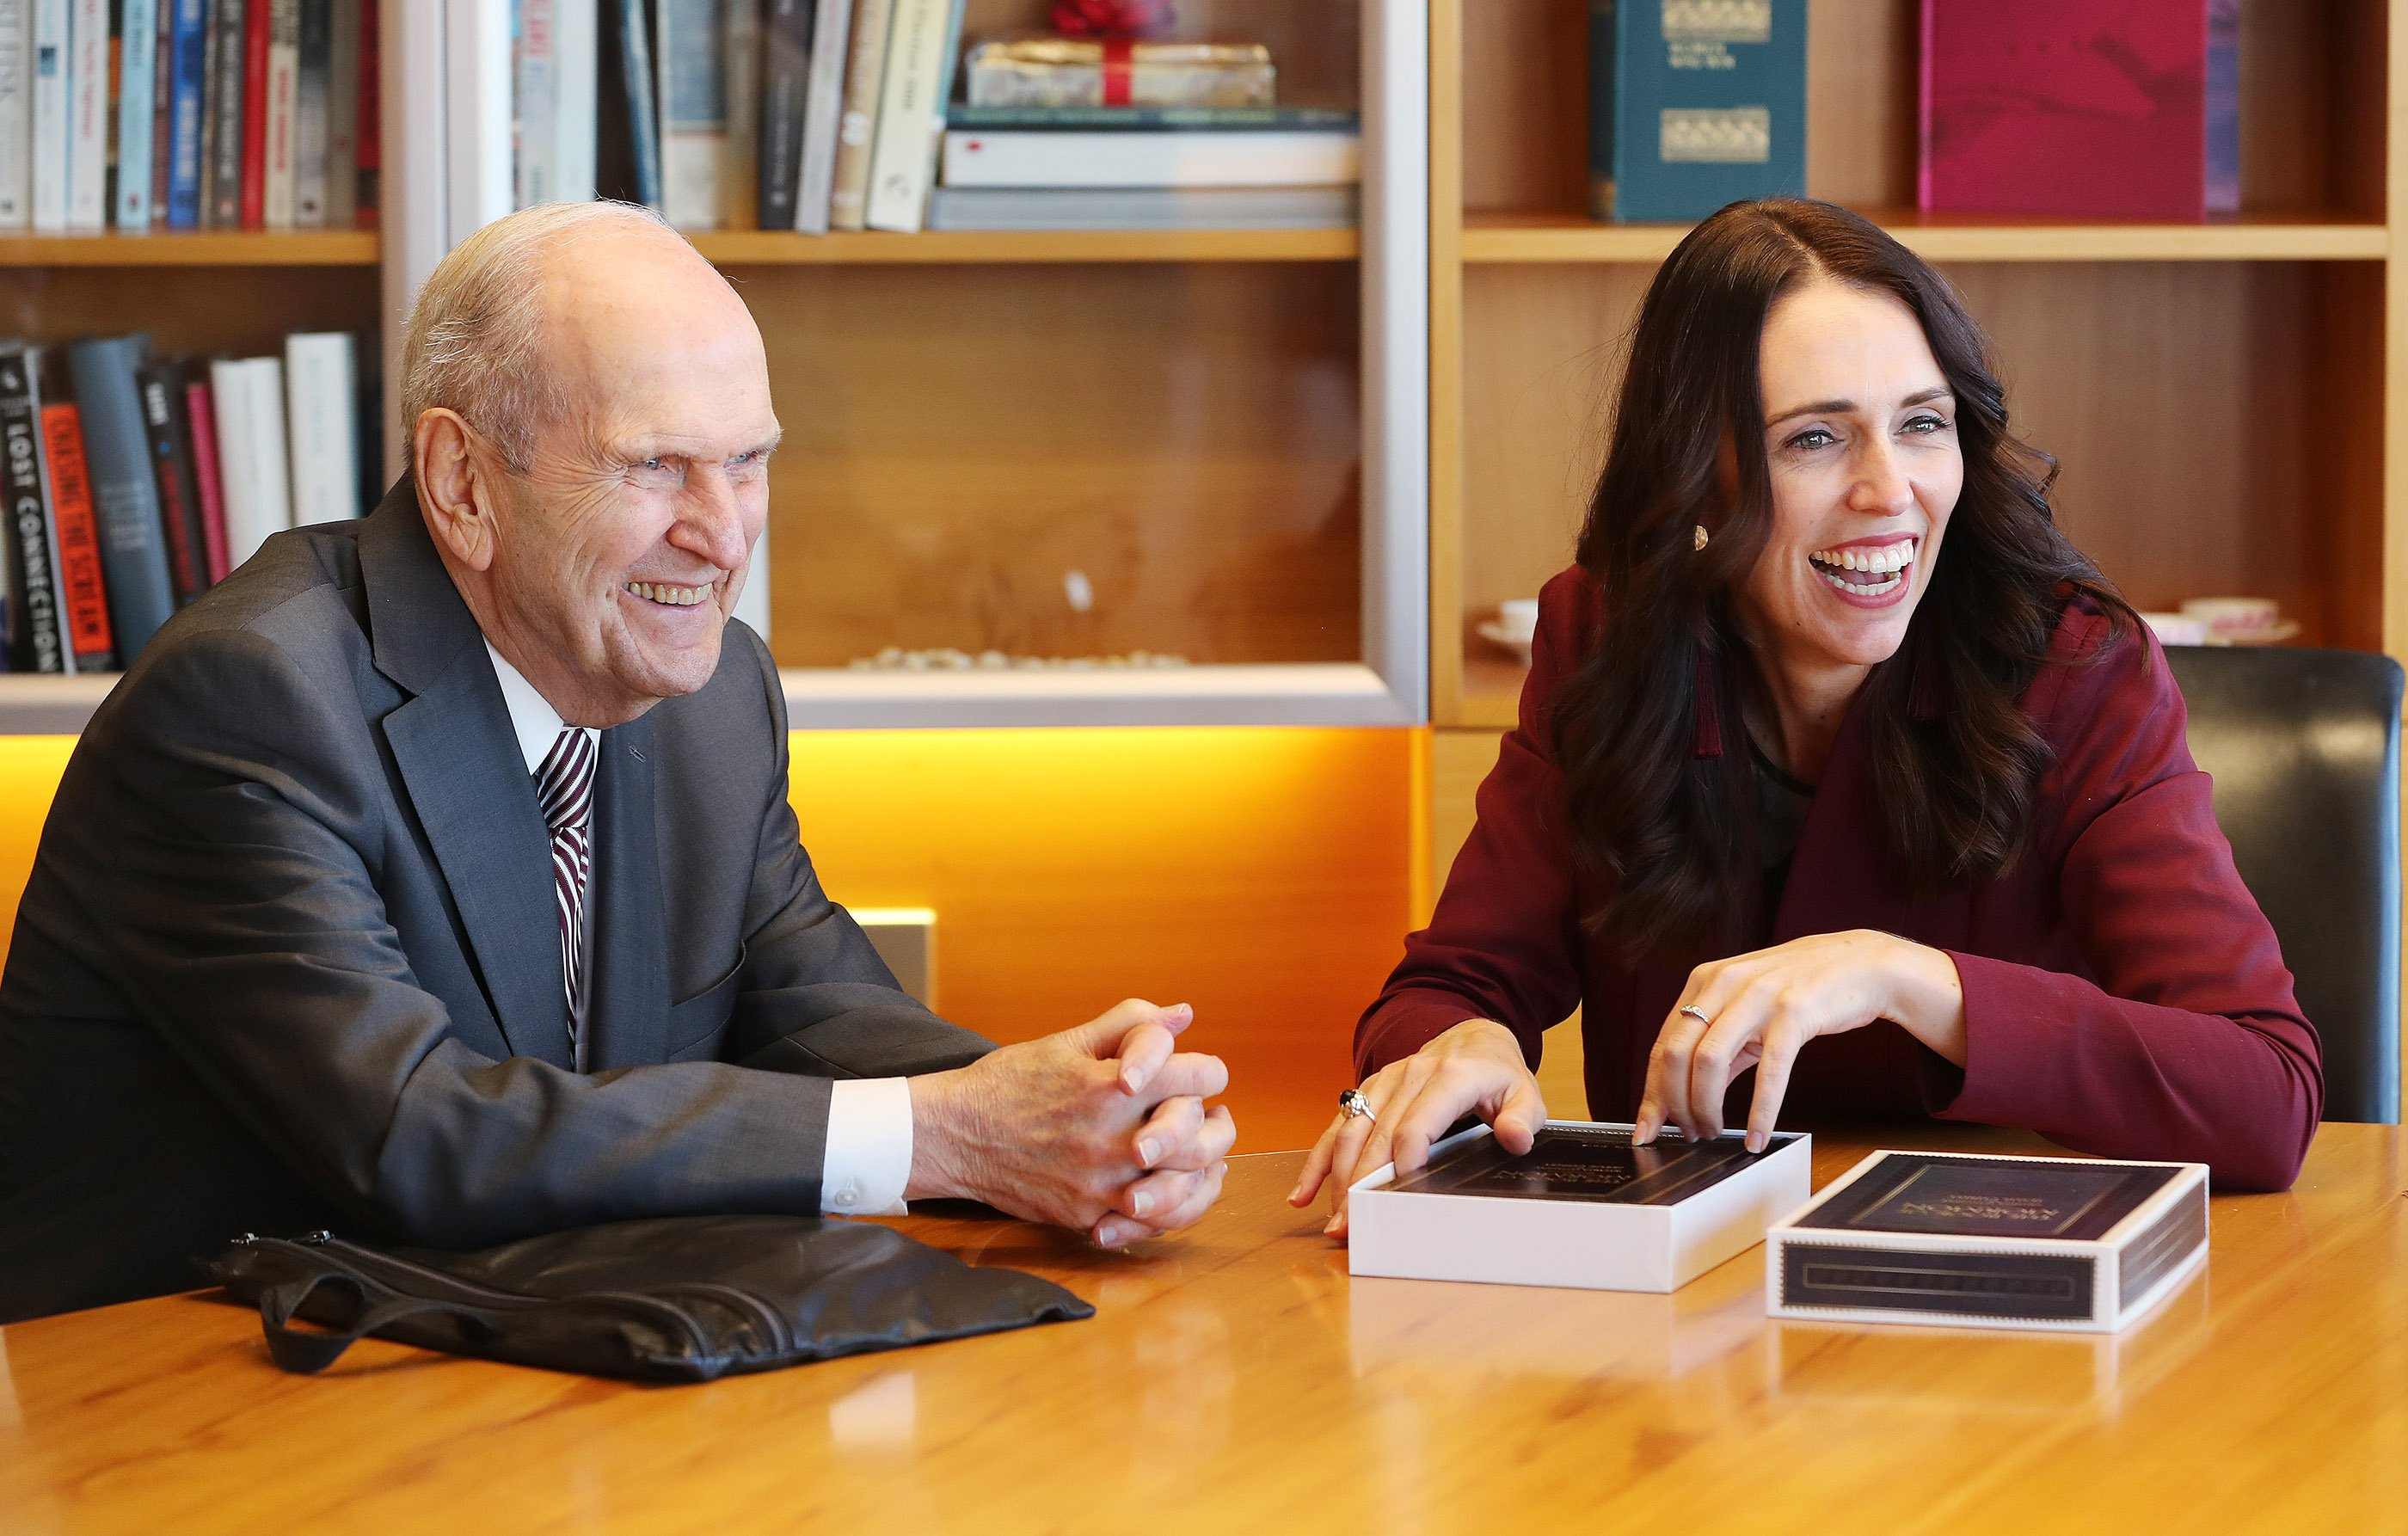 New Zealand PM Ardern is the face of a new generation of former Mormons - Religion News Service